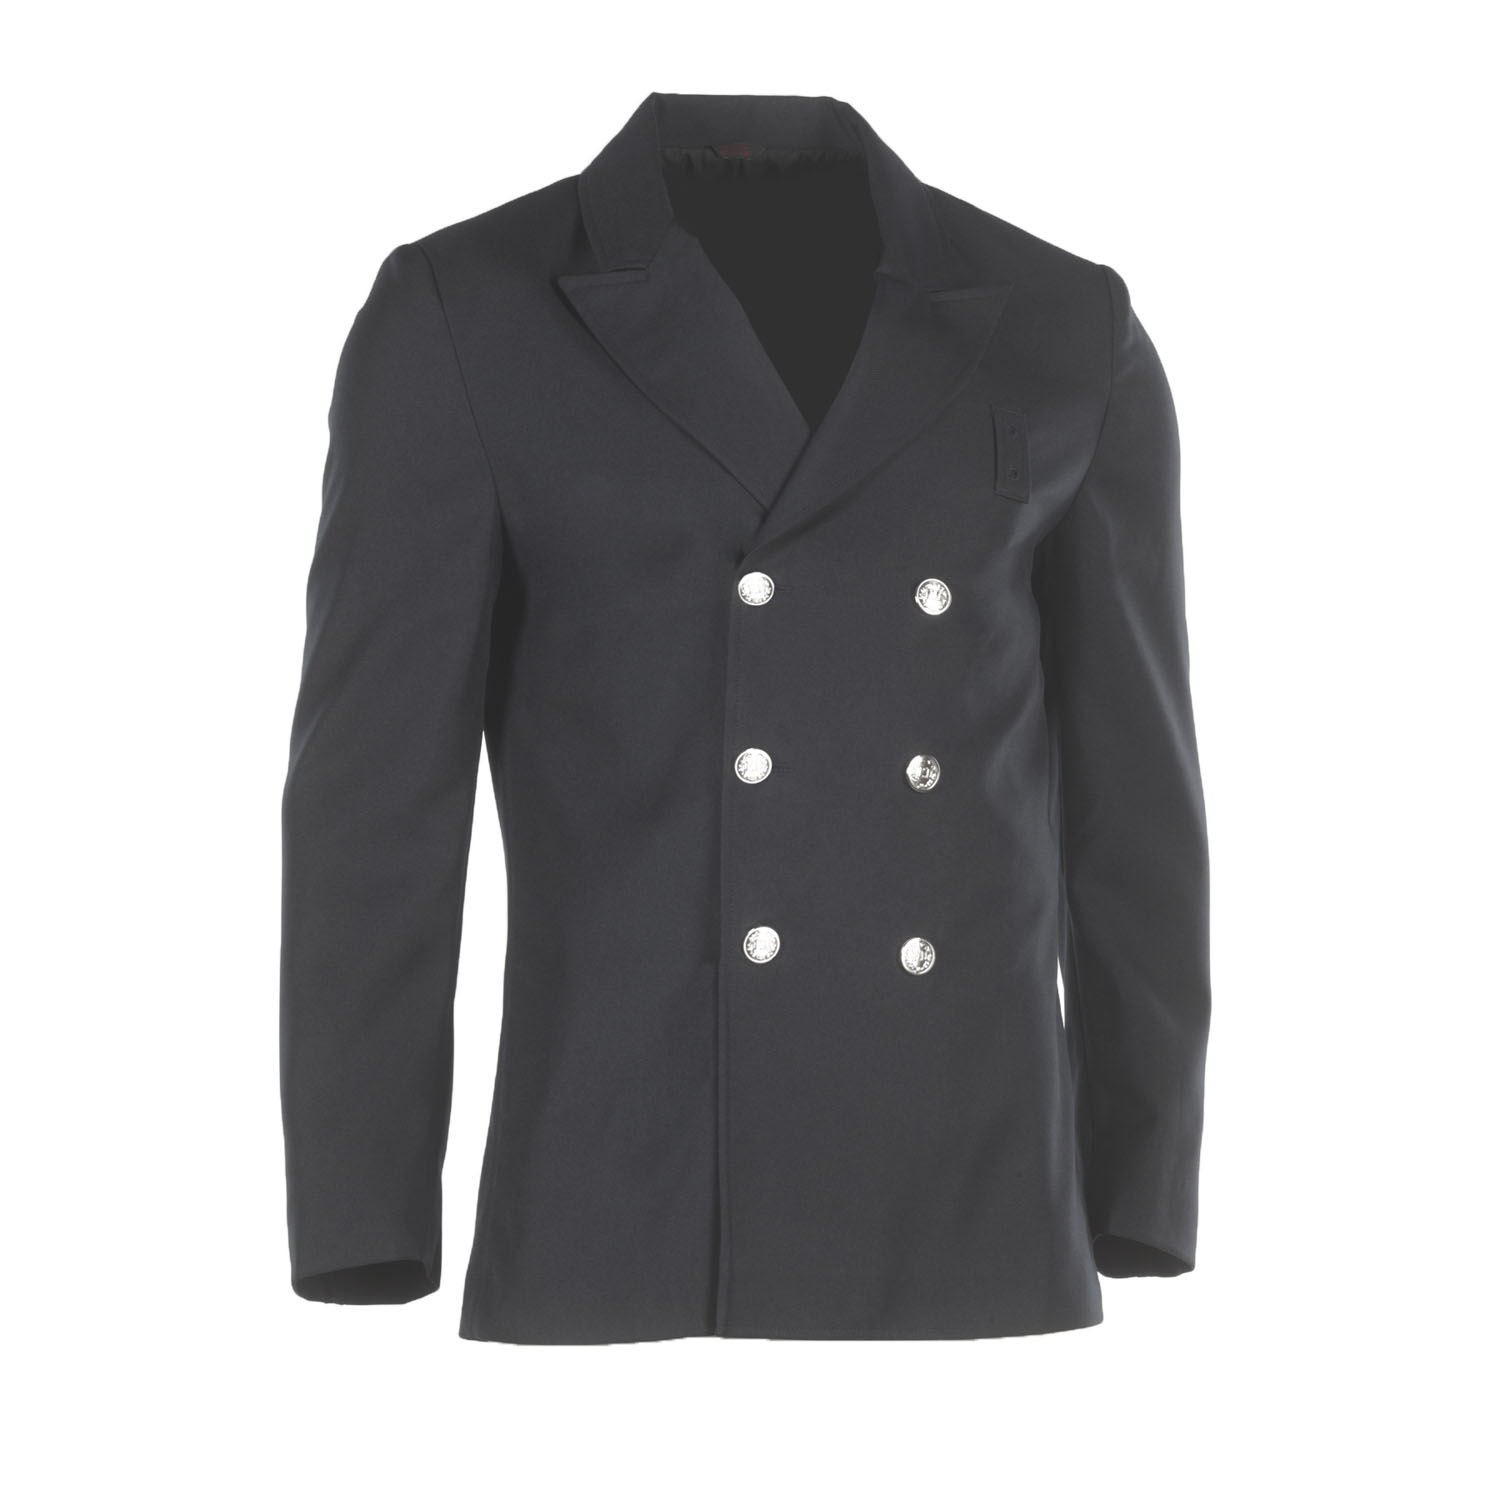 Liberty Uniform Double-Breasted FD Blouse Coat